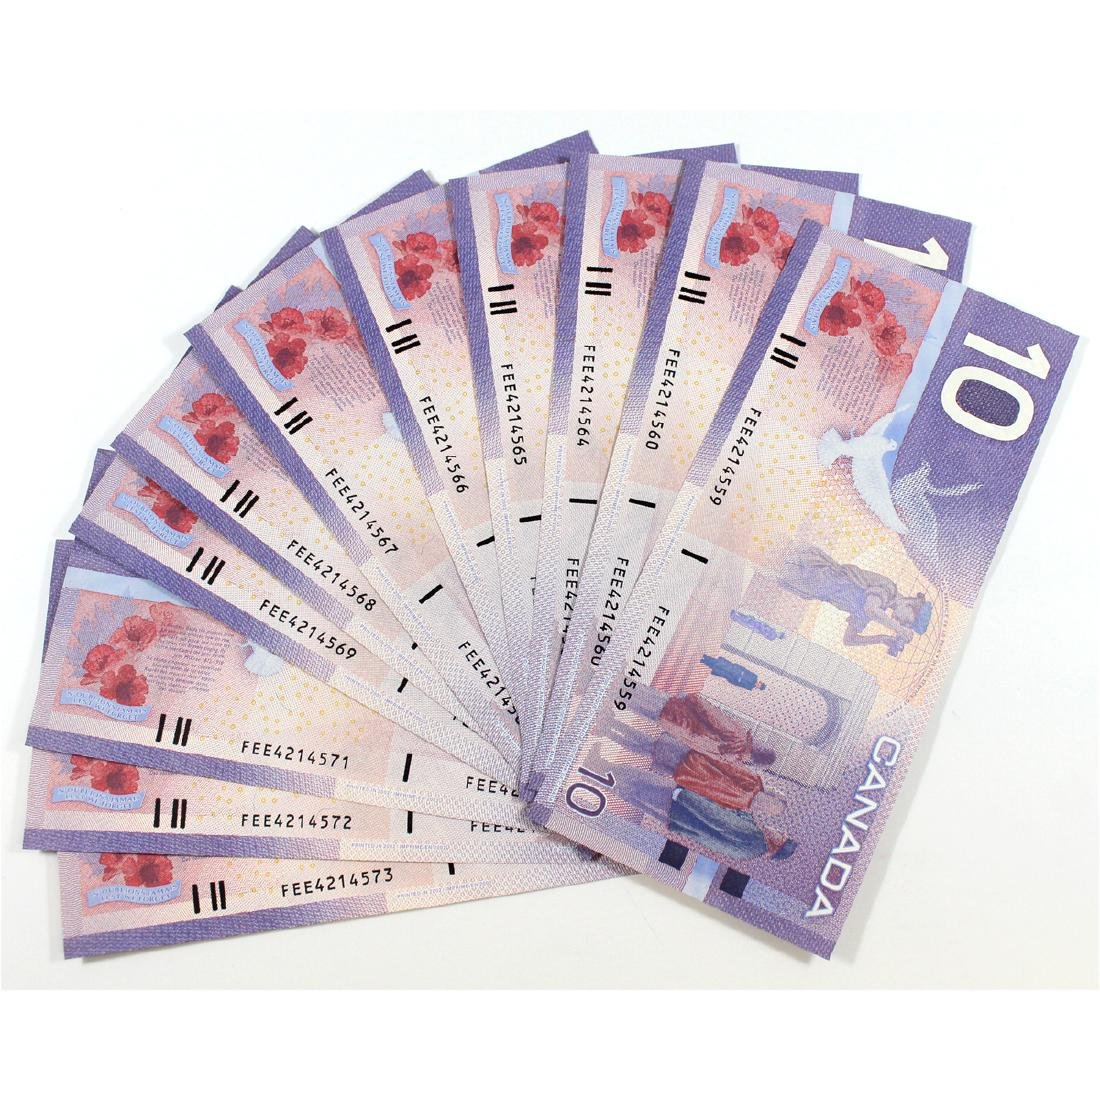 15 x 2001 changeover $10.00 notes with FEE prefix and